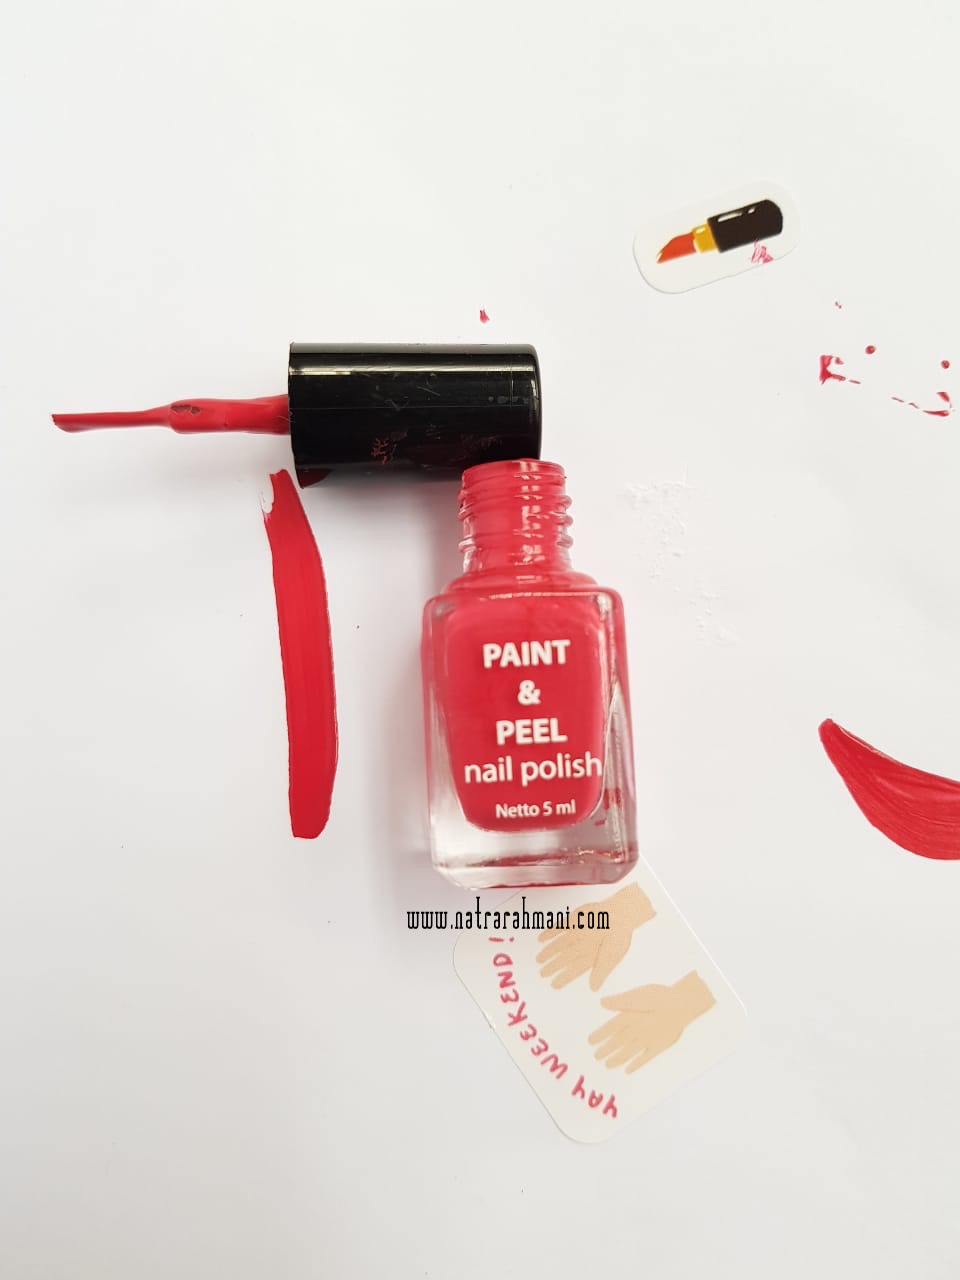 sophie-paris-paint-and-peel-nail-polish-natrarahmani